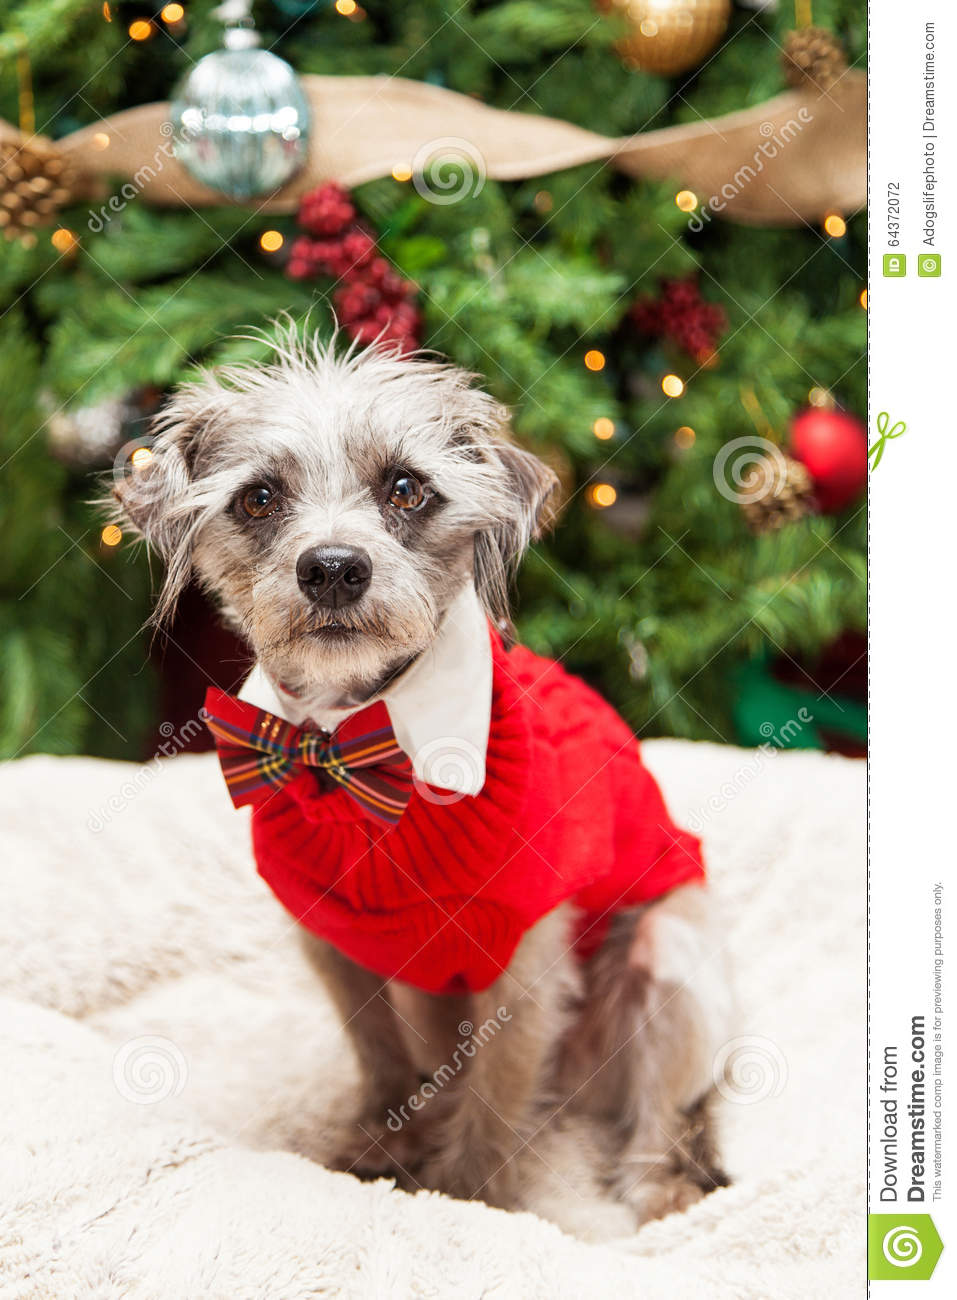 Big Dog Wearing Sweater Adorable Terrie...